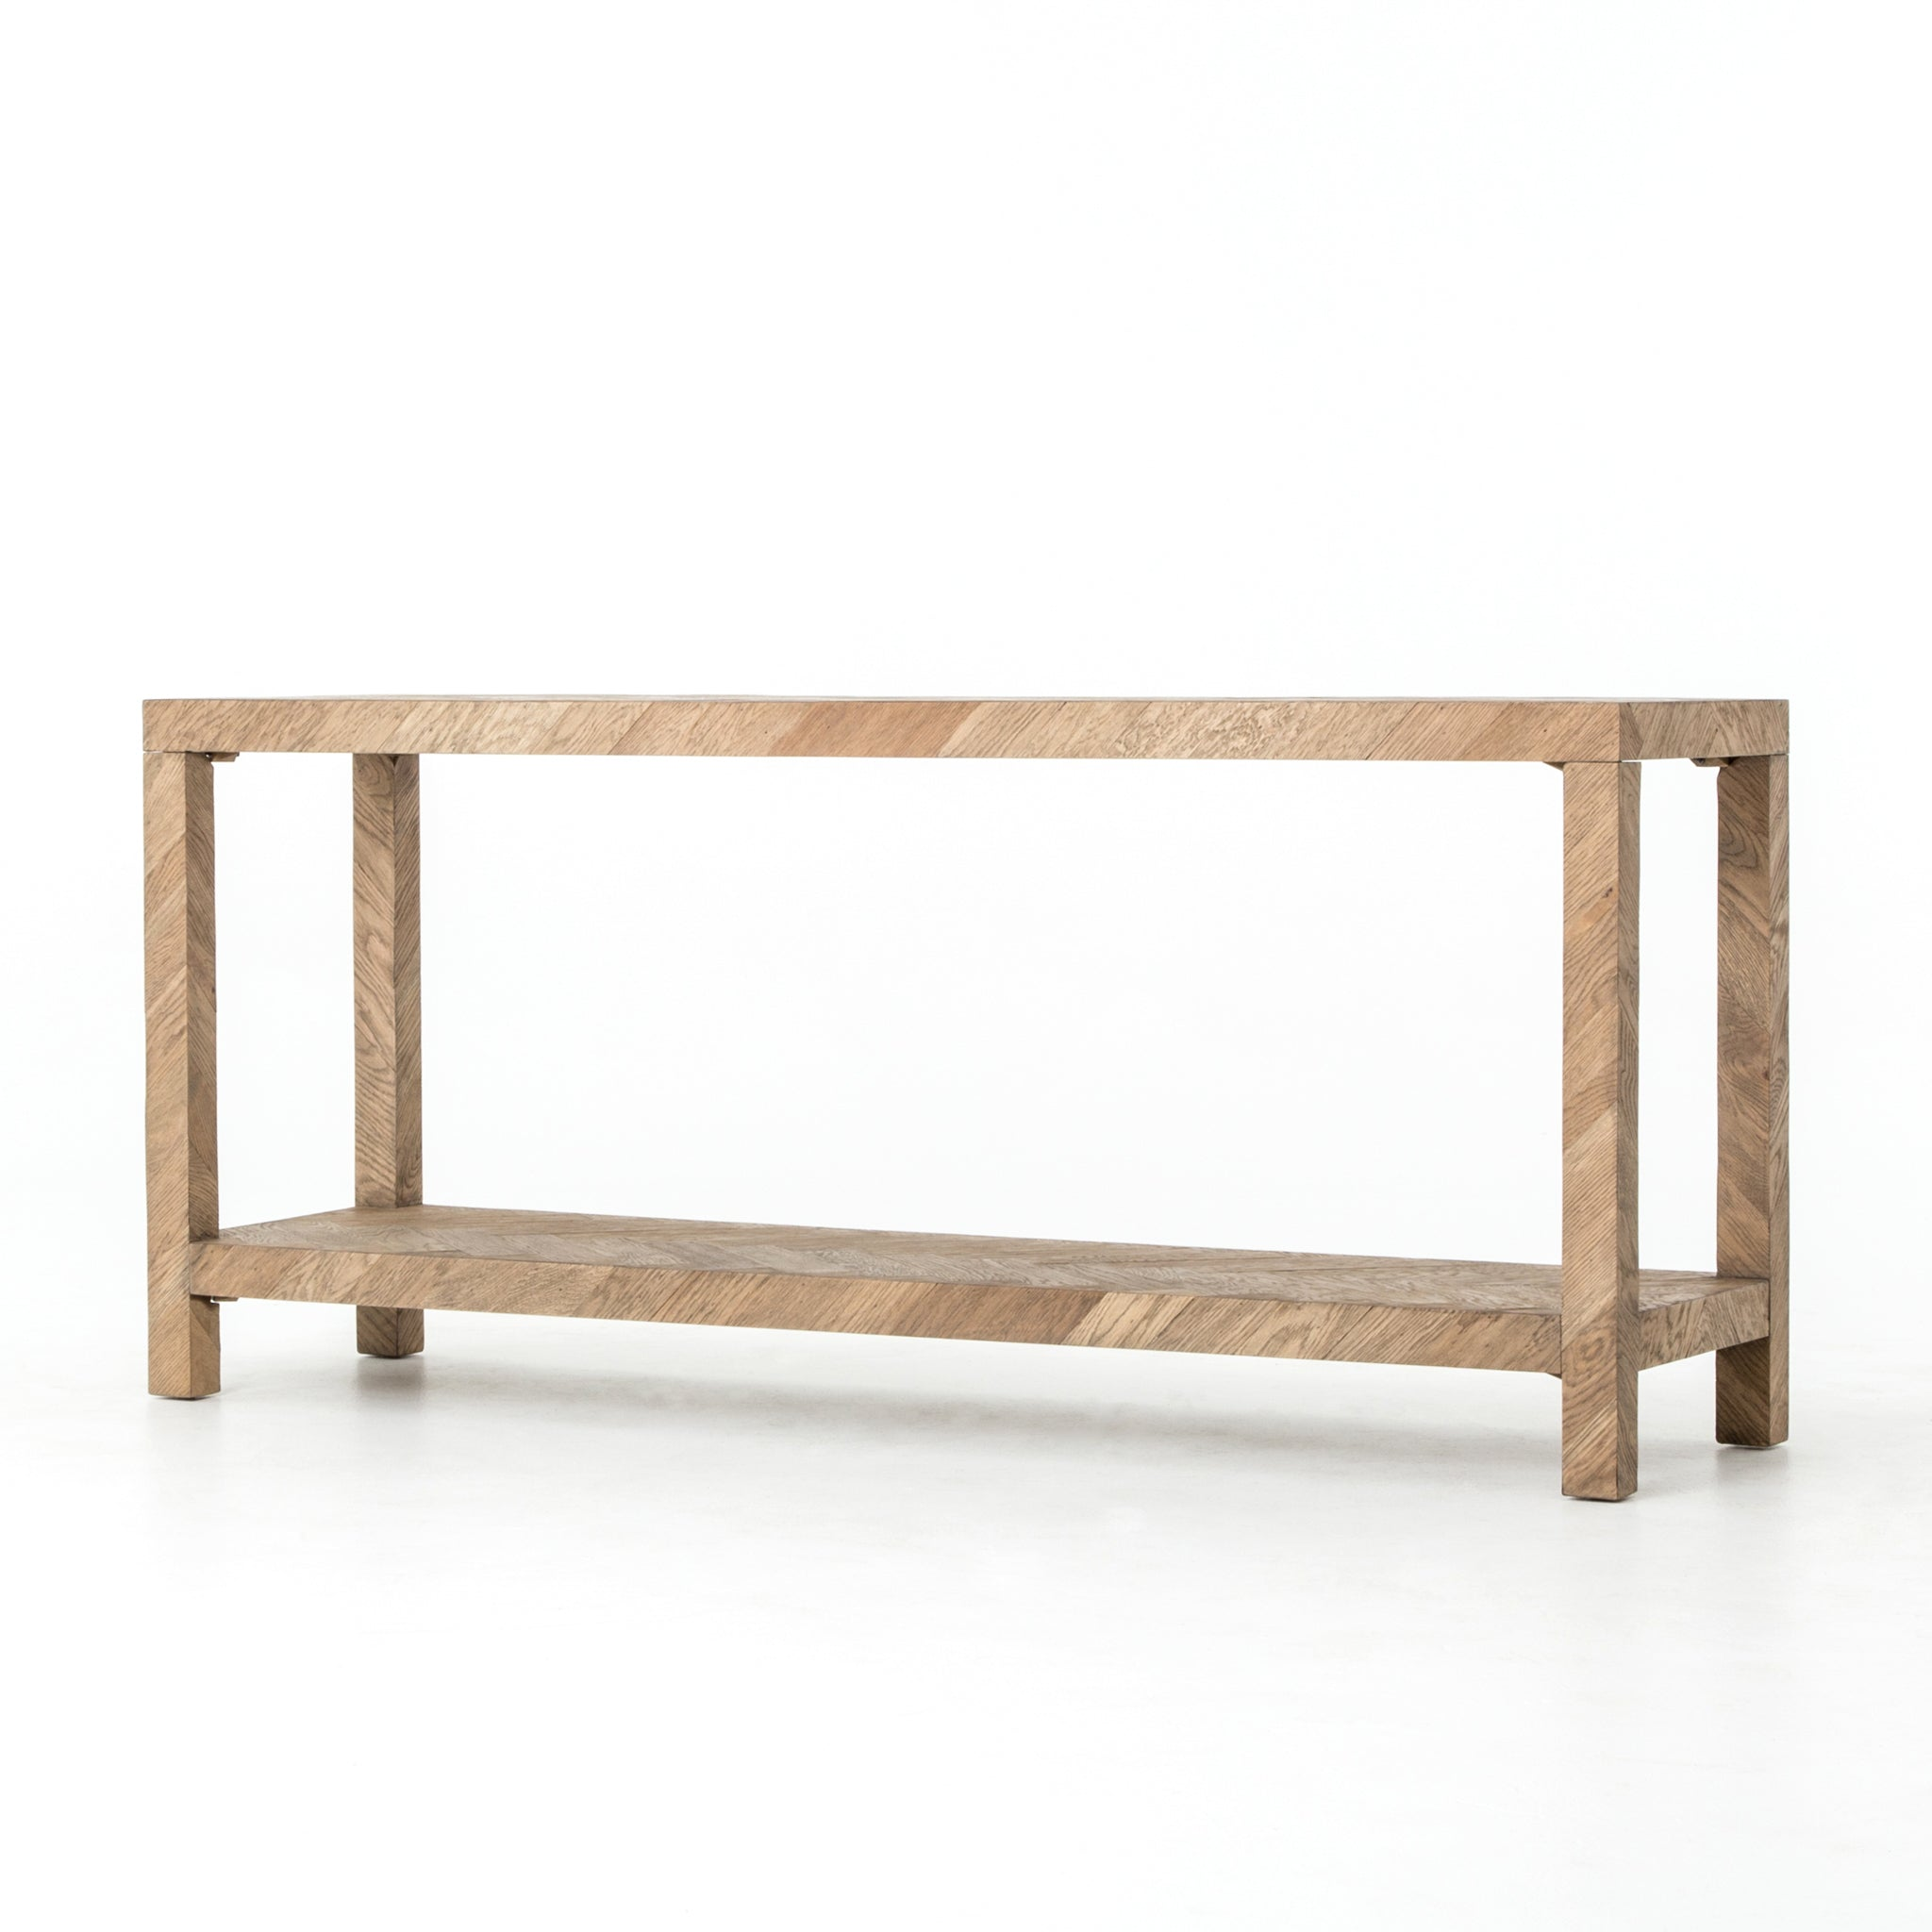 Simple Farmhouse Parsons Console Table - Furniture on Main